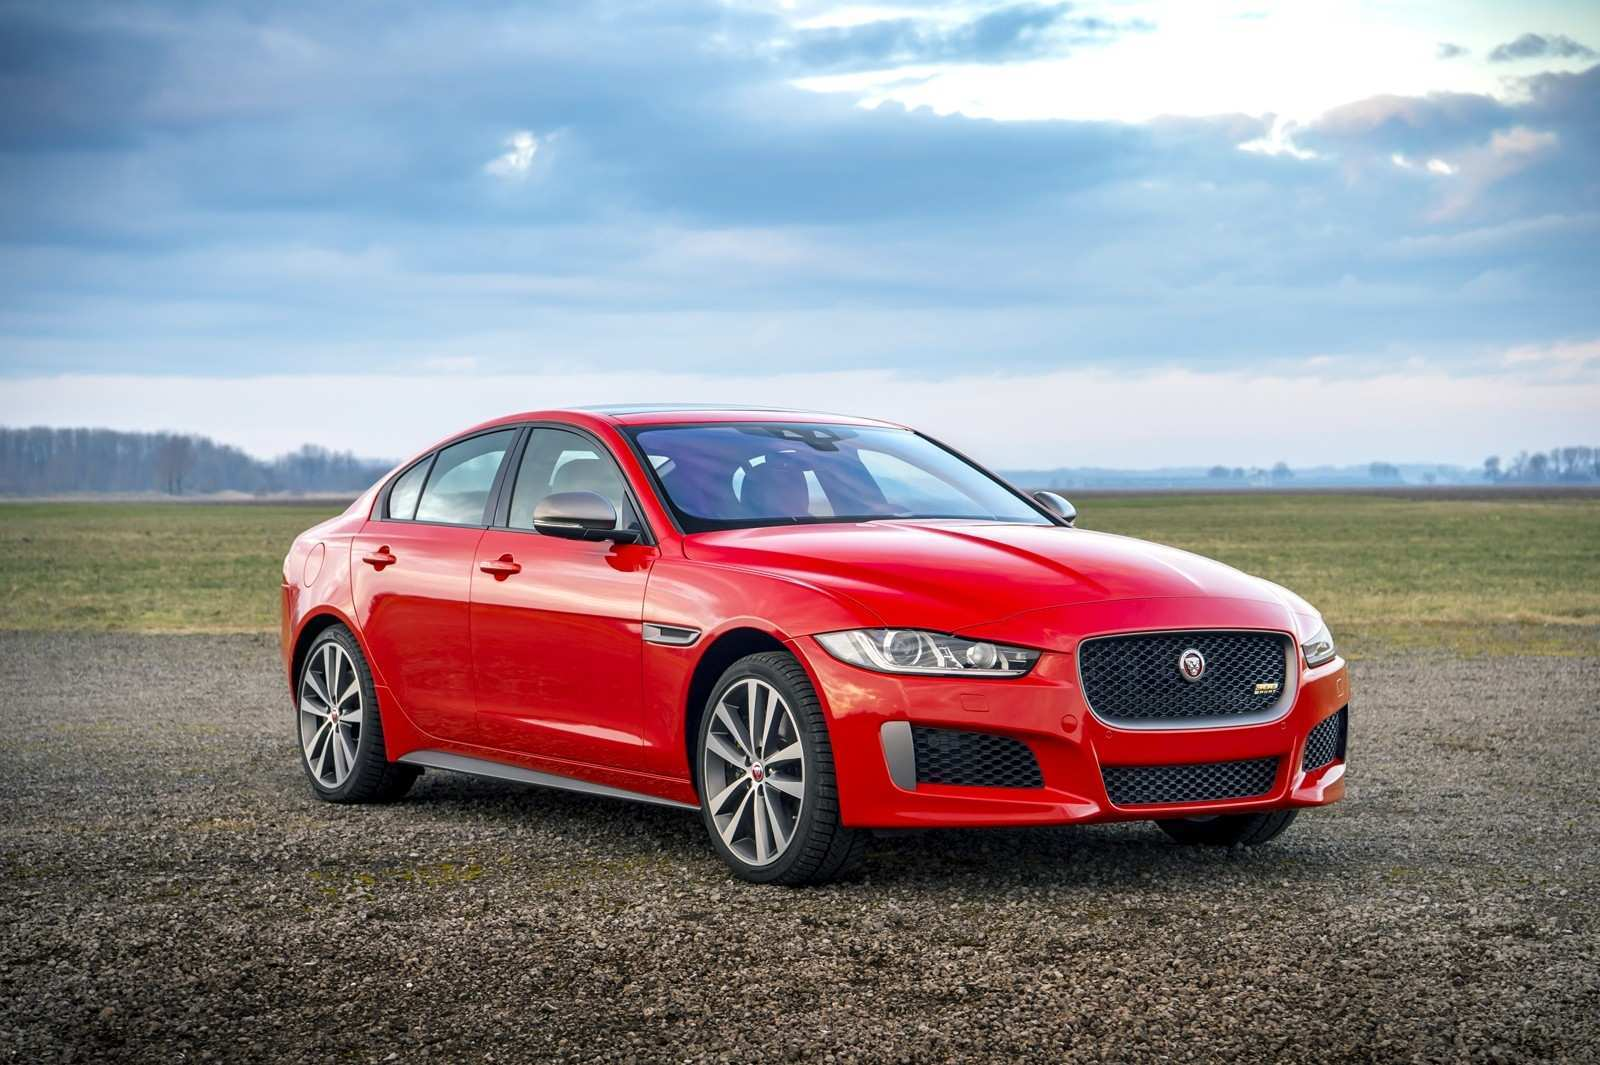 81 Gallery of New Xe Jaguar 2019 First Drive Price Performance And Review Research New by New Xe Jaguar 2019 First Drive Price Performance And Review